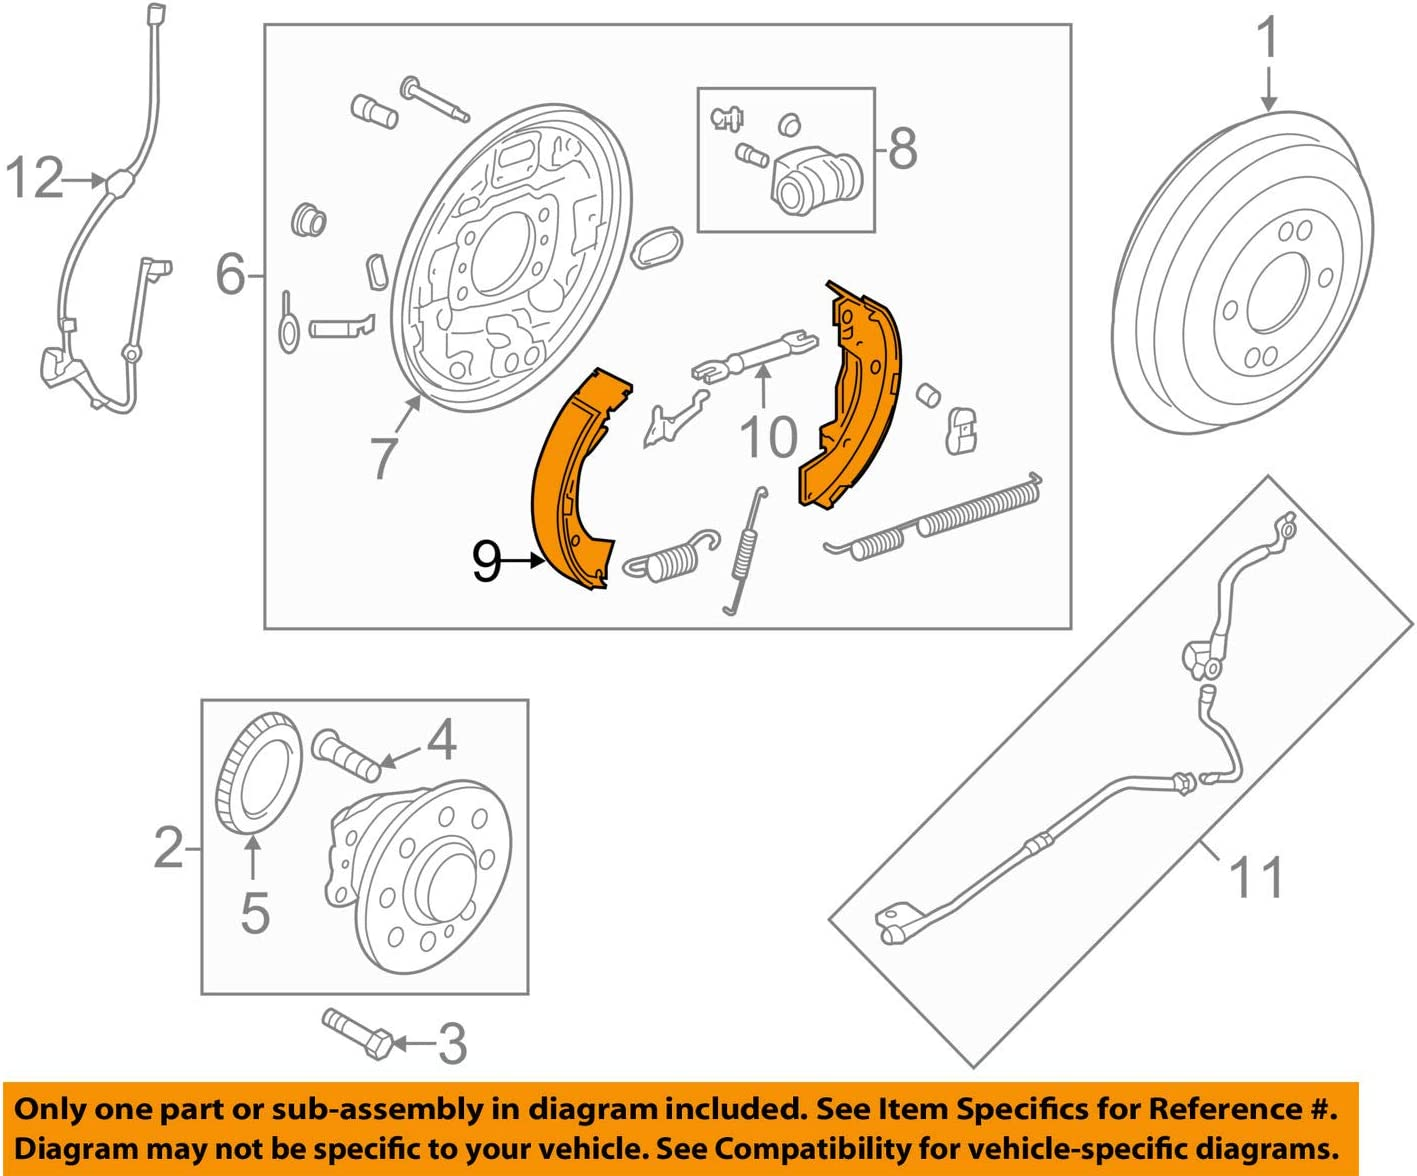 Genuine Hyundai 58305-3XA00 low-pricing Parking Brake All stores are sold and R Kit Lining Shoe